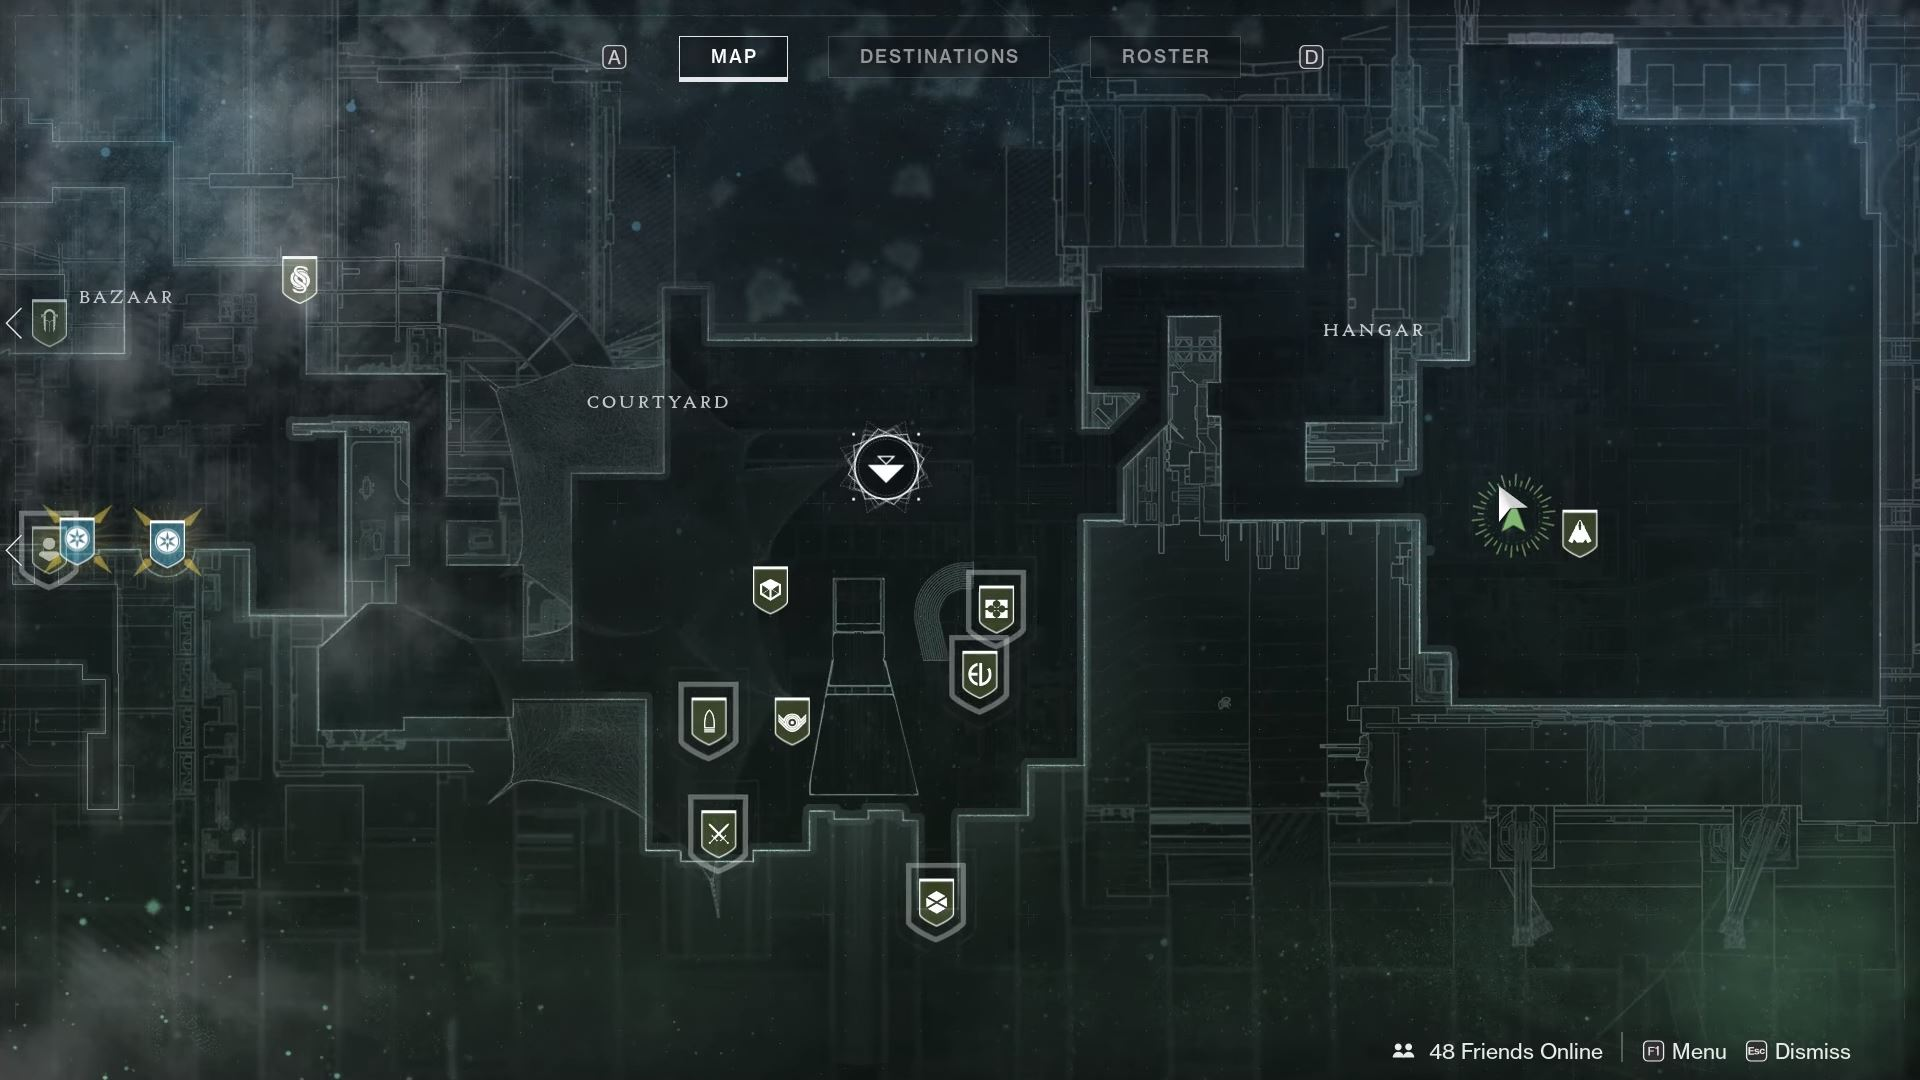 During the week of January 11, Xur can be found in the Tower area chilling out over in the Hangar.